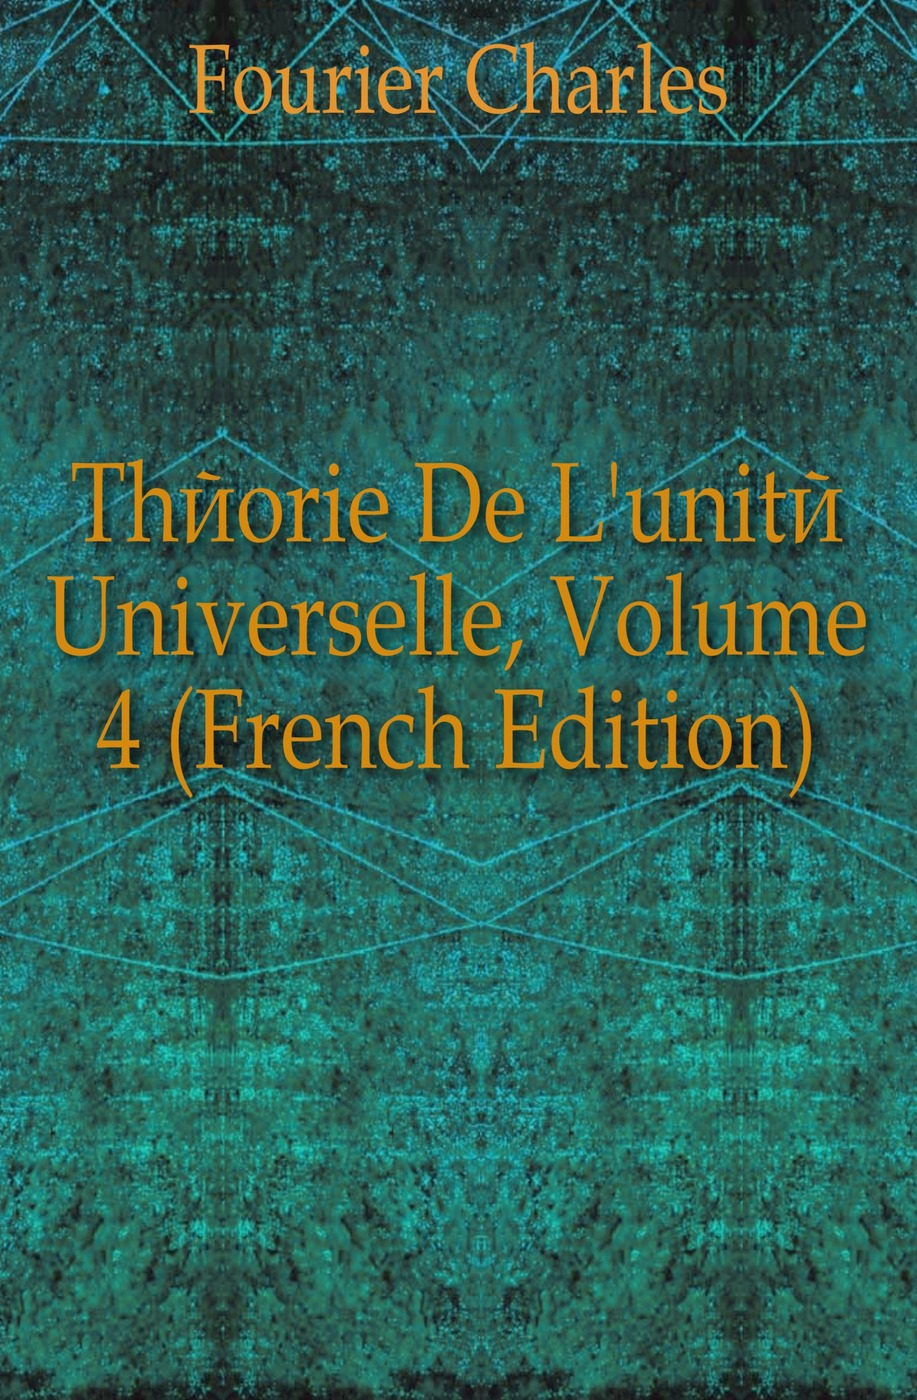 Fourier Charles Theorie De L'unite Universelle, Volume 4 (French Edition) charles blanc les beaux arts a l exposition universelle de 1878 french edition